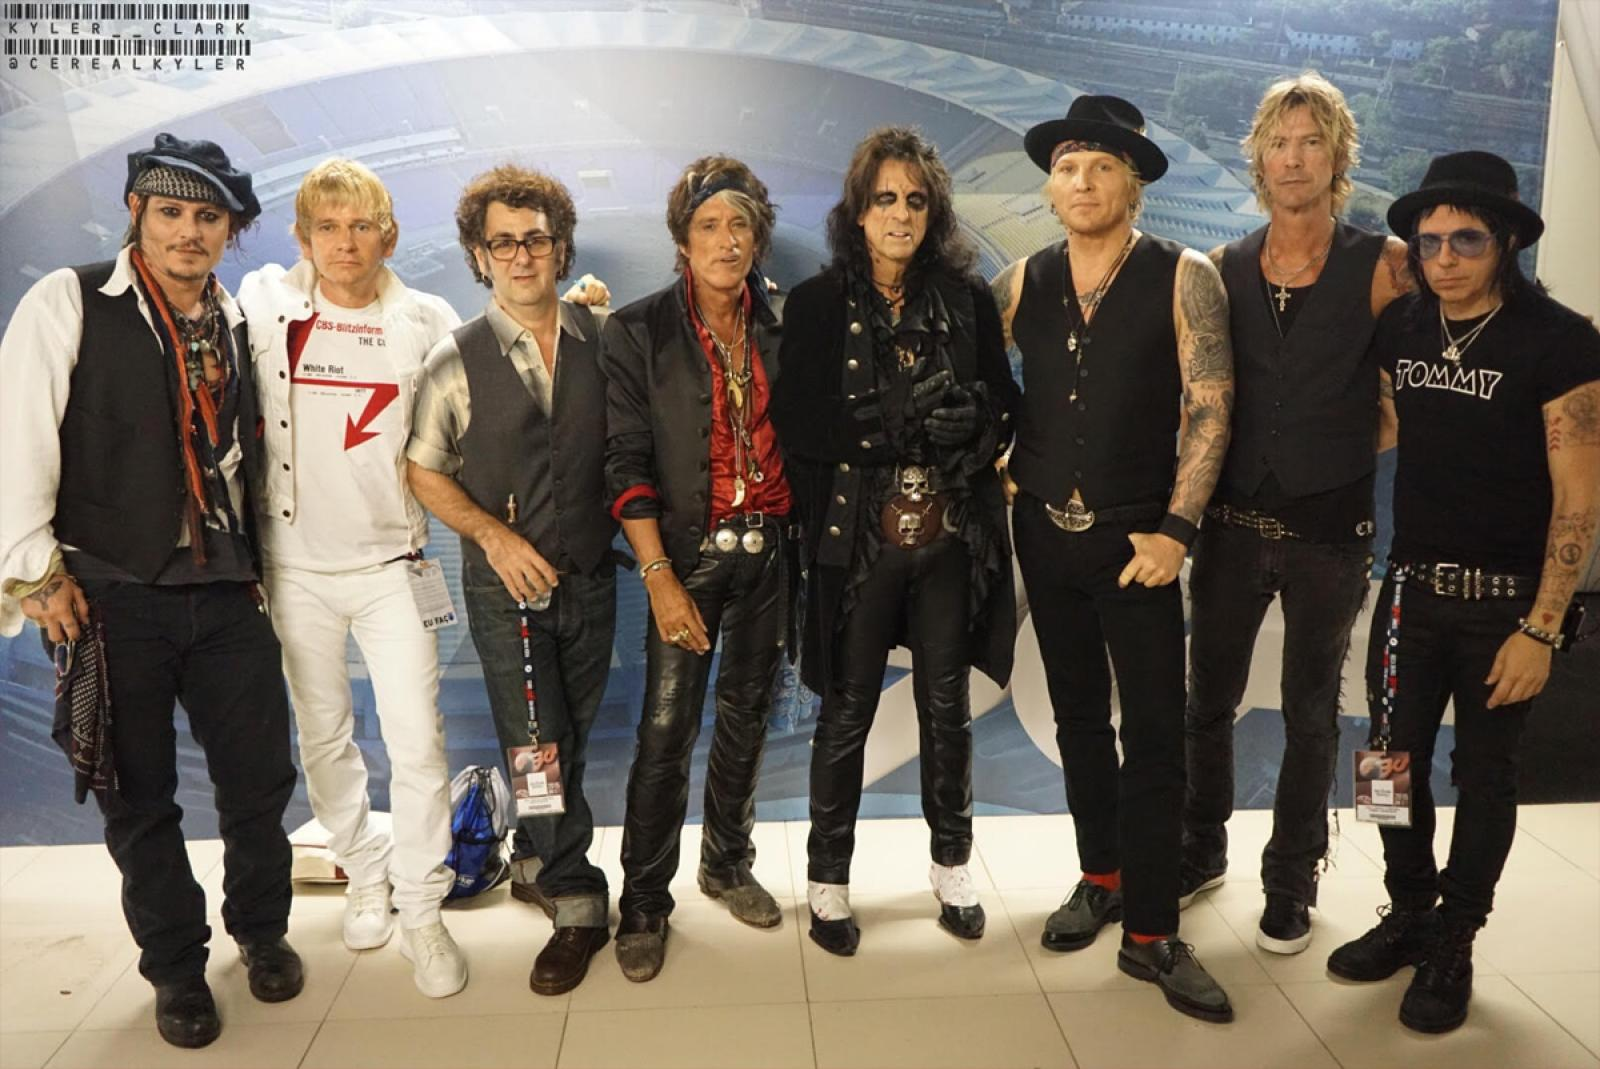 Starkey Hearing Foundation And The Hollywood Vampires Bring The Gift of Hearing to 200+ People in Need in Rio De Janeiro, Brazil